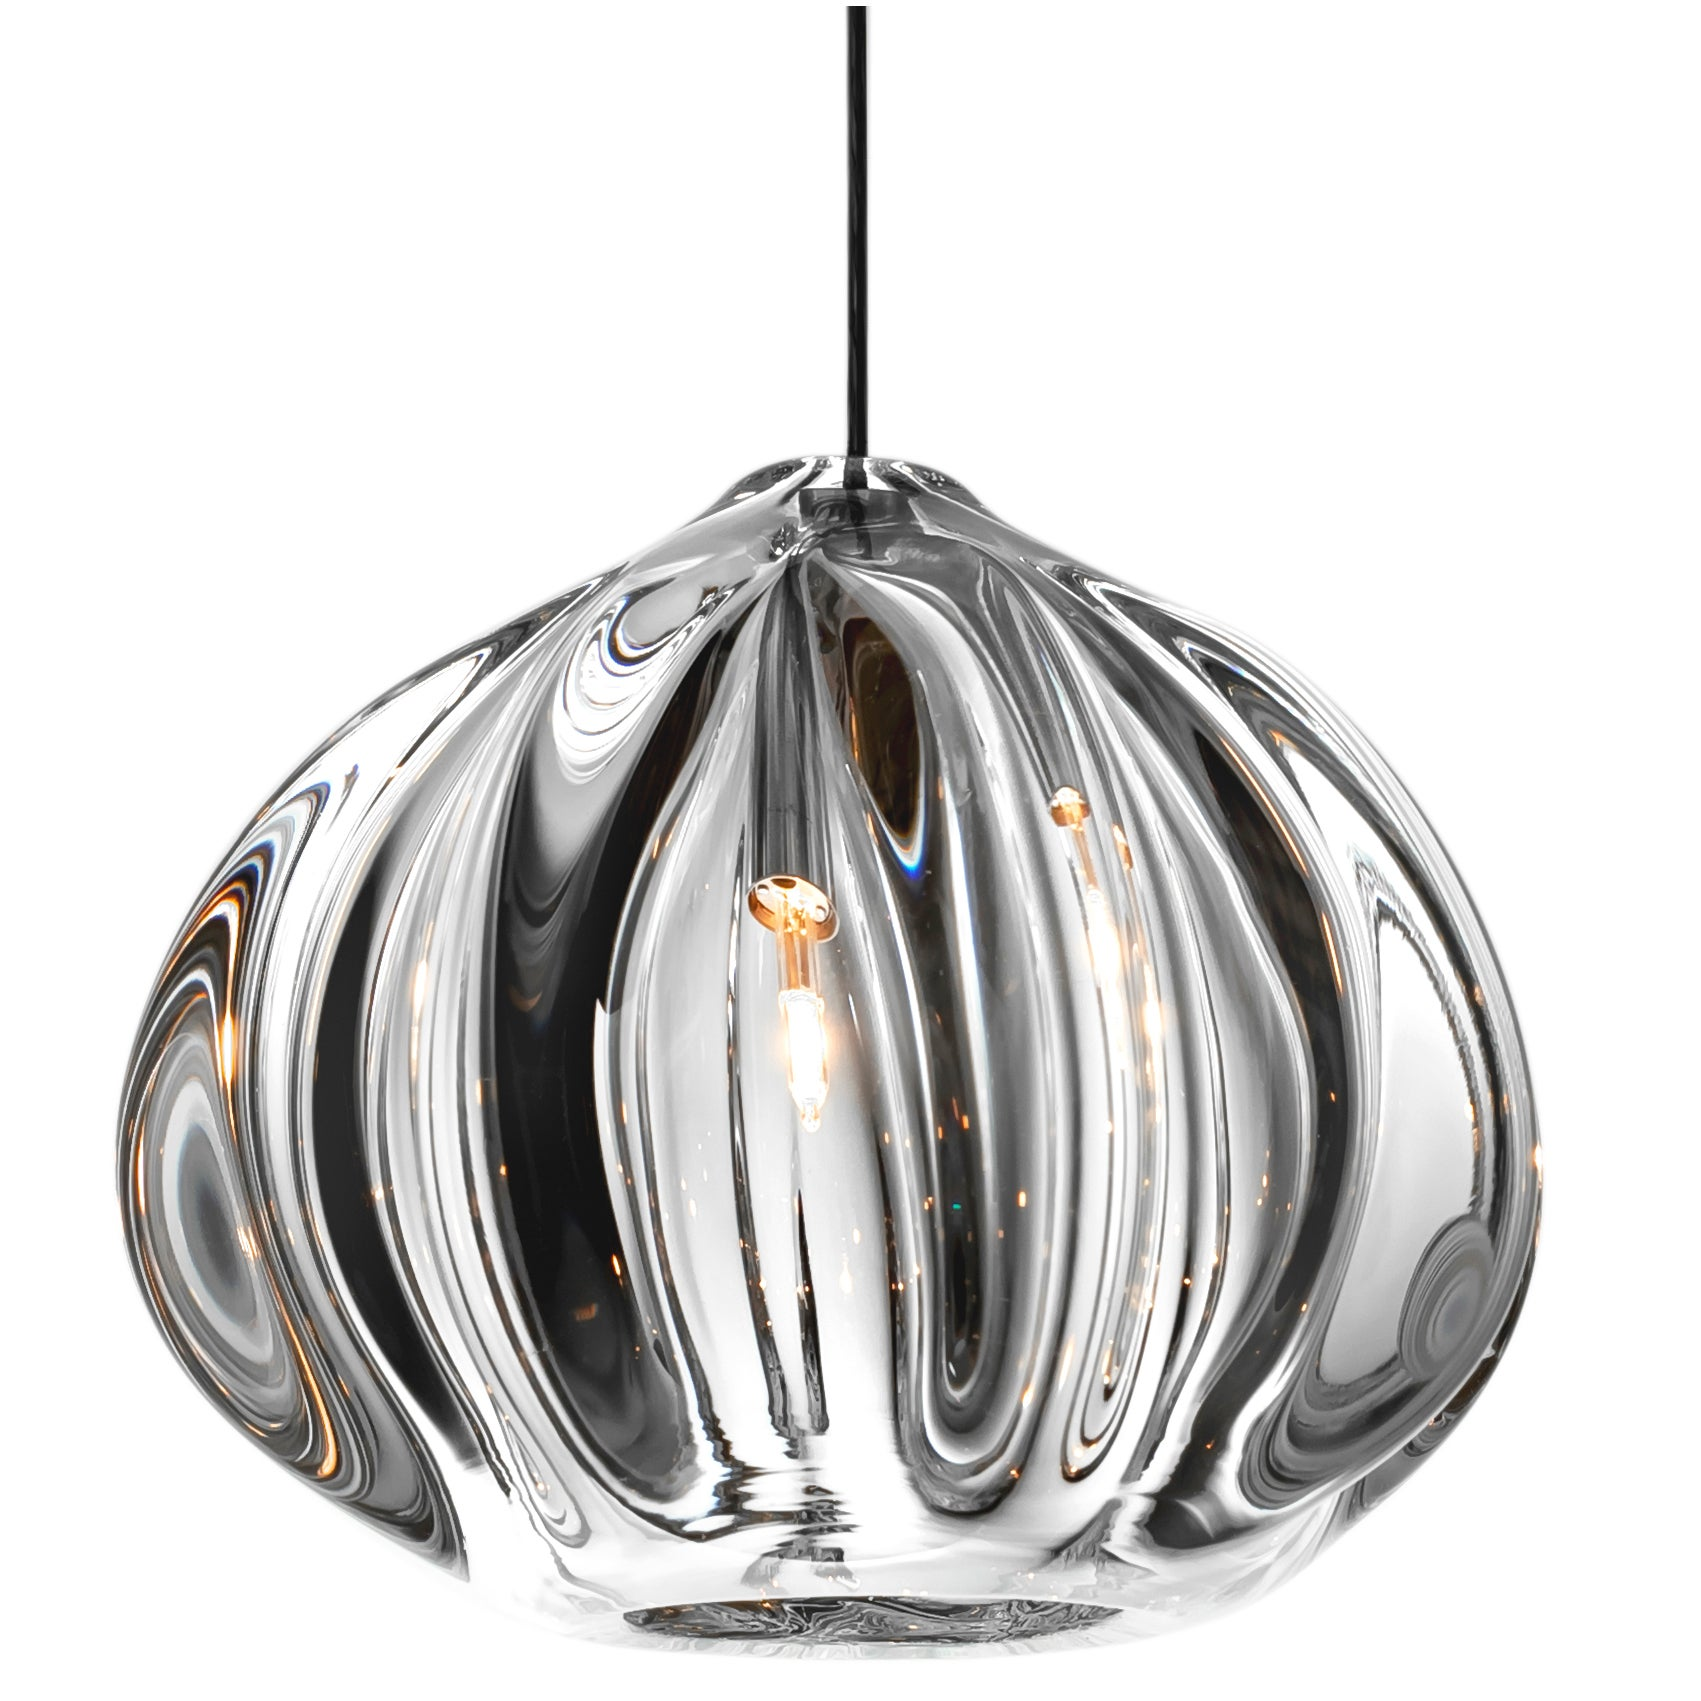 Pendant Lighting Modern Glass Shade Urchin Pendant Lighting By Siemon Salazar Made To Order